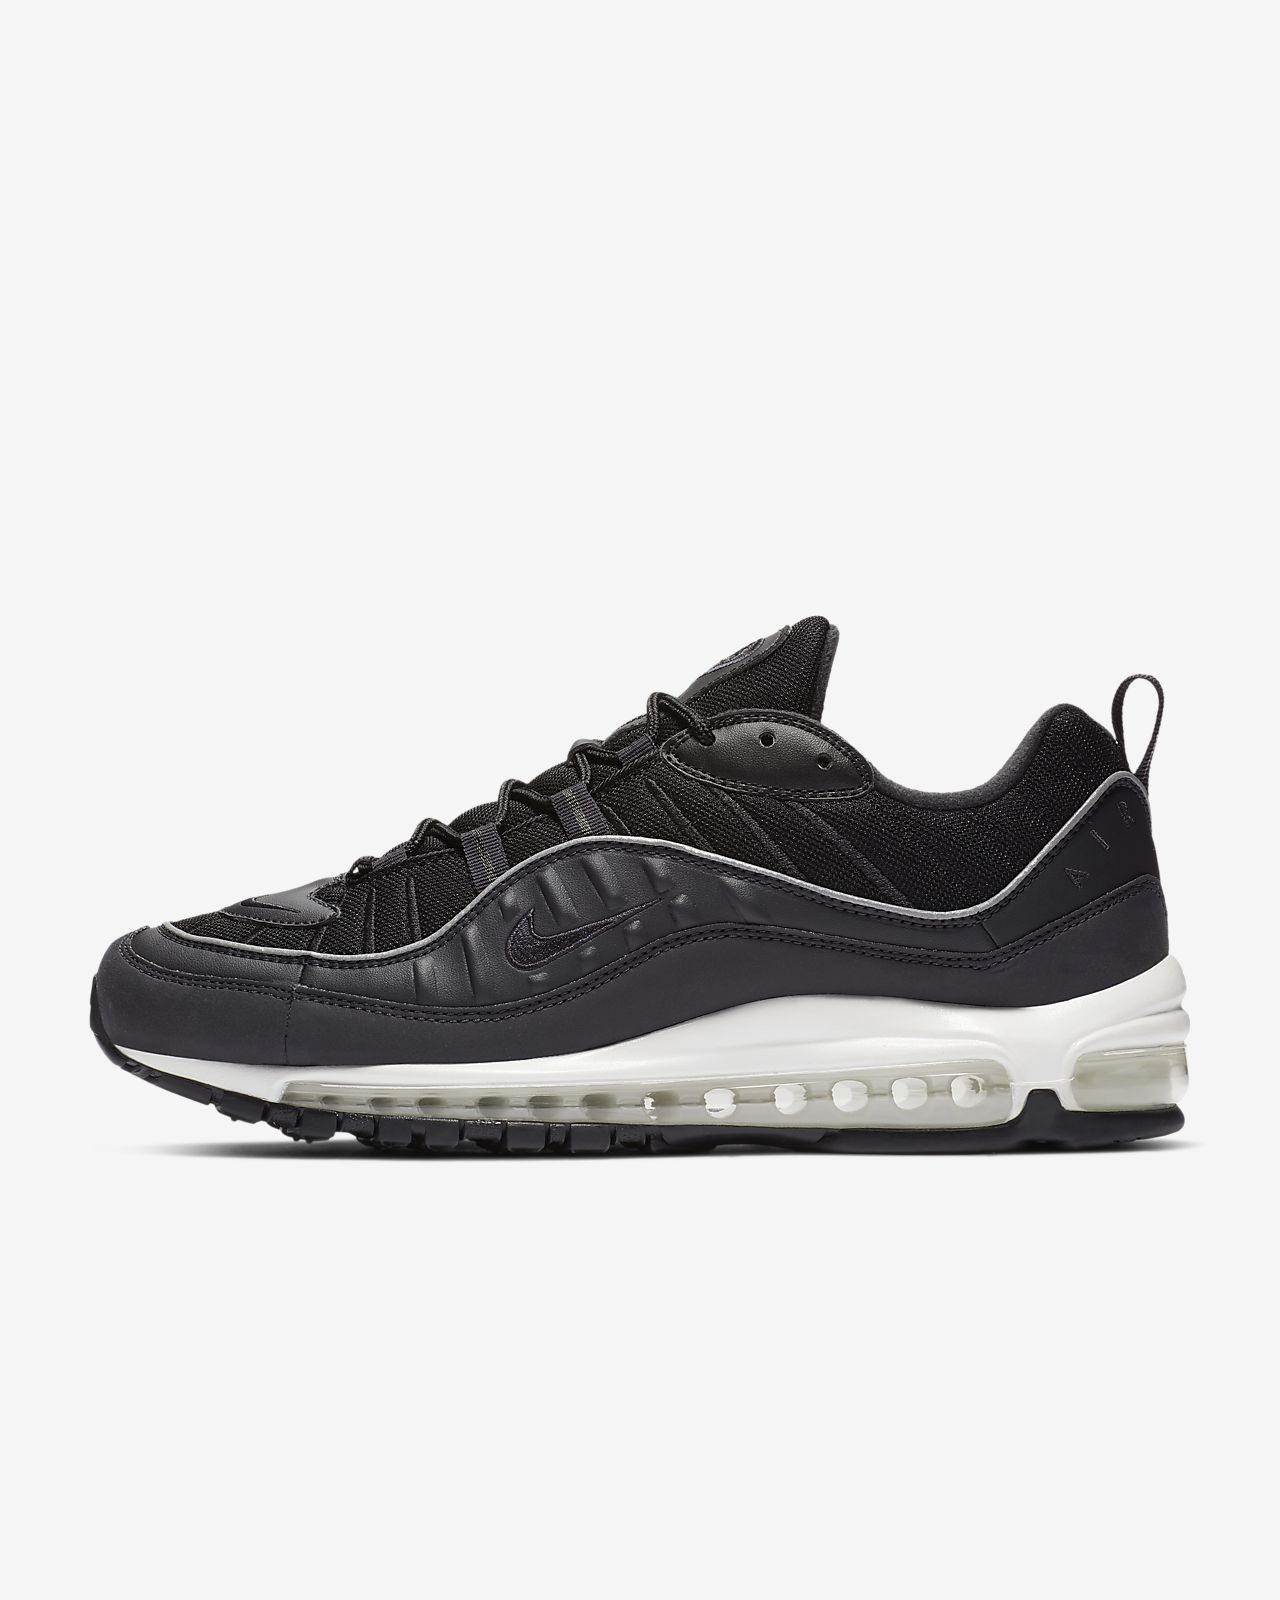 sneakers for cheap 98107 0cec8 ... Nike Air Max 98 Zapatillas - Hombre